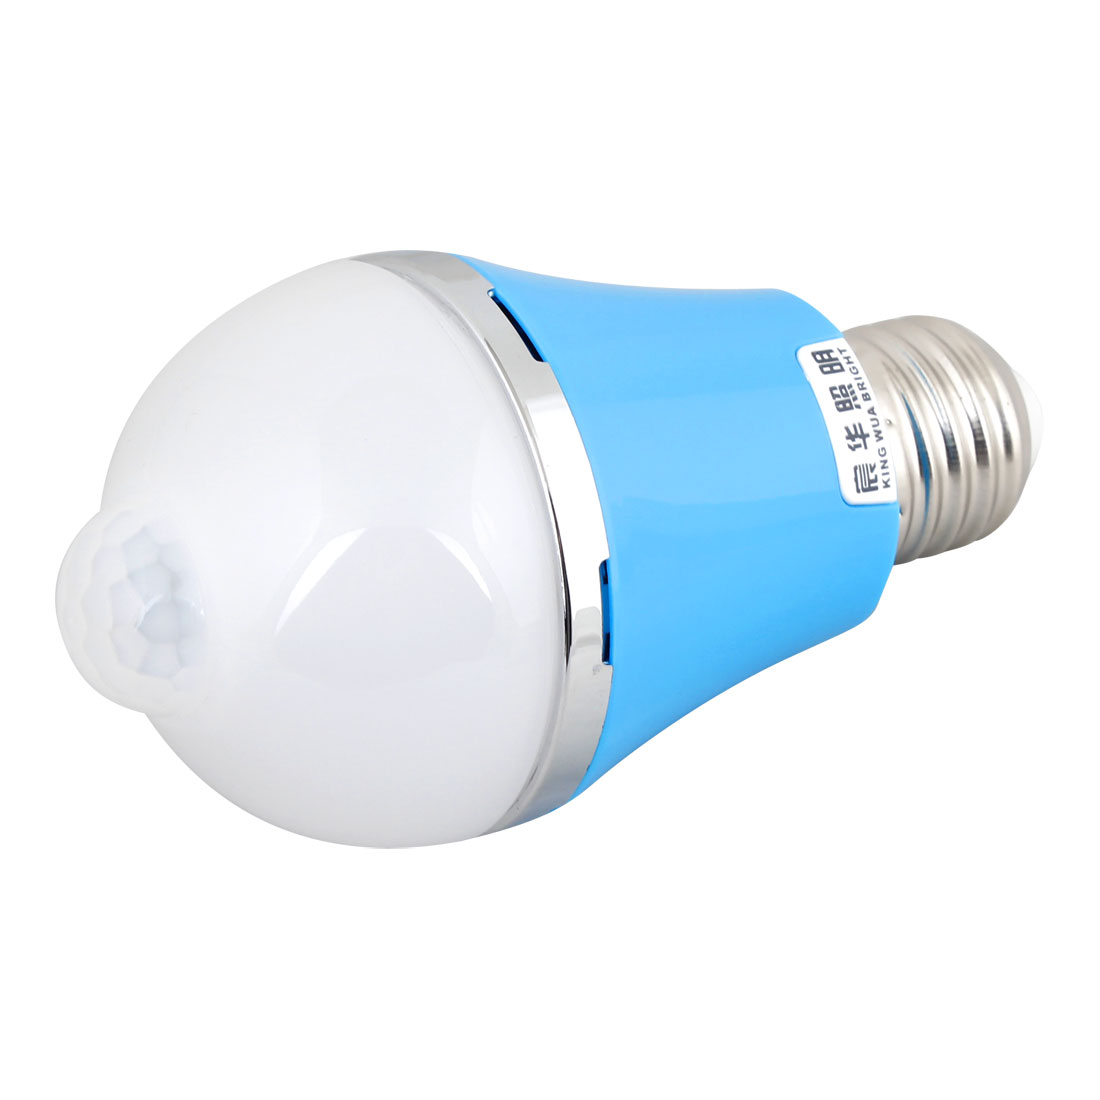 2700K-3500K 85-265V AC 7W E27 Warm White LED Sensor Light Lamp Bulb Blue